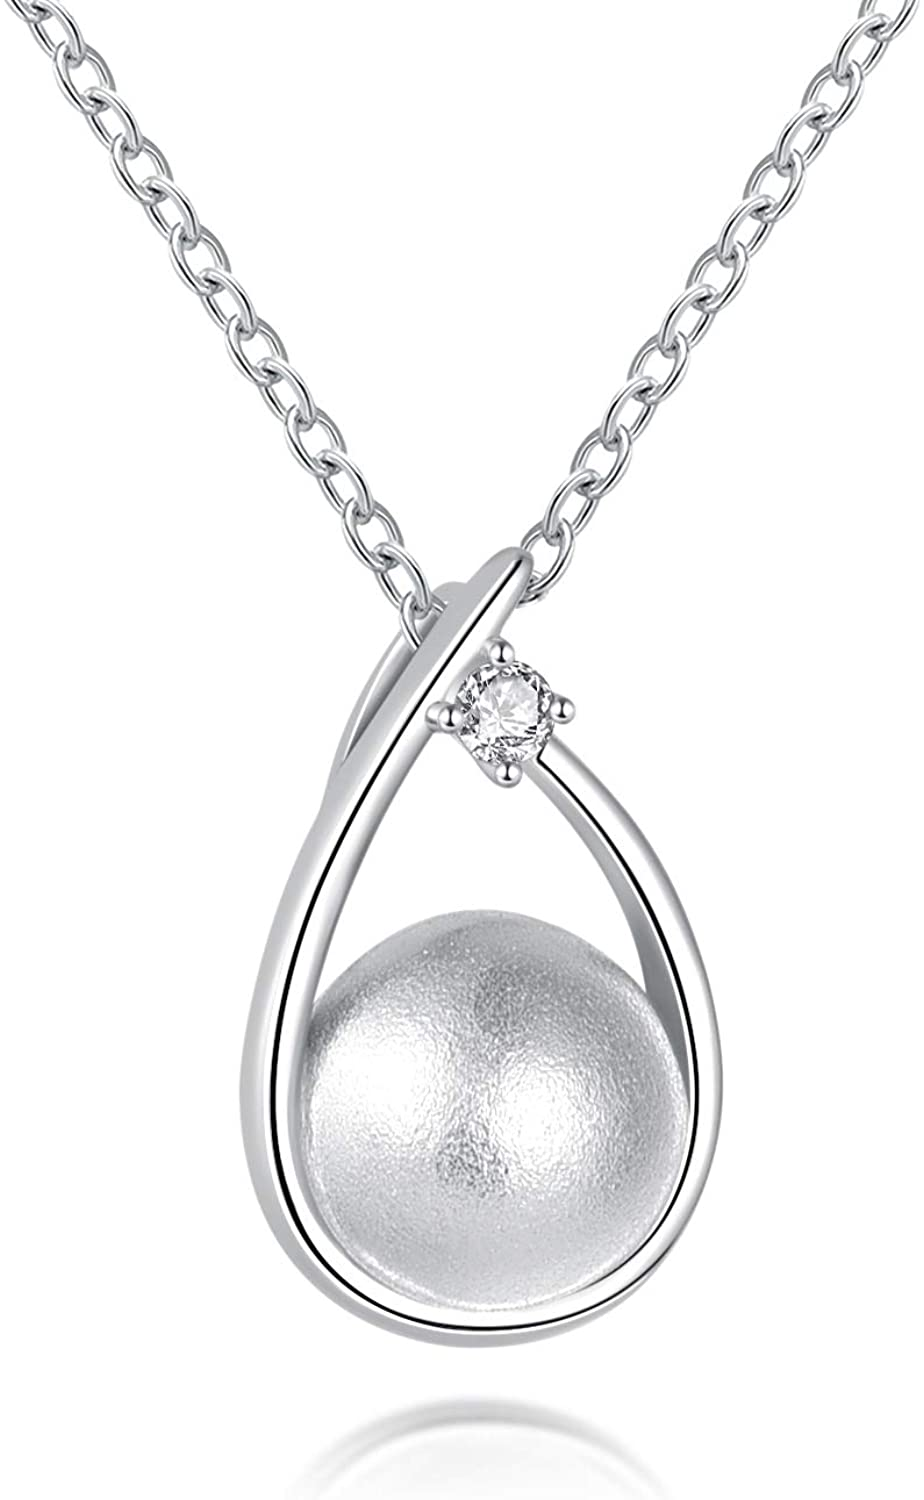 JLYY Minimalist Cremation Jewelry for Ashes 925 Sterling Silver CZ Heart Teardrop Pendant Keepsake Memorial Funeral Urn Women Necklace for Your Everlasting Memories